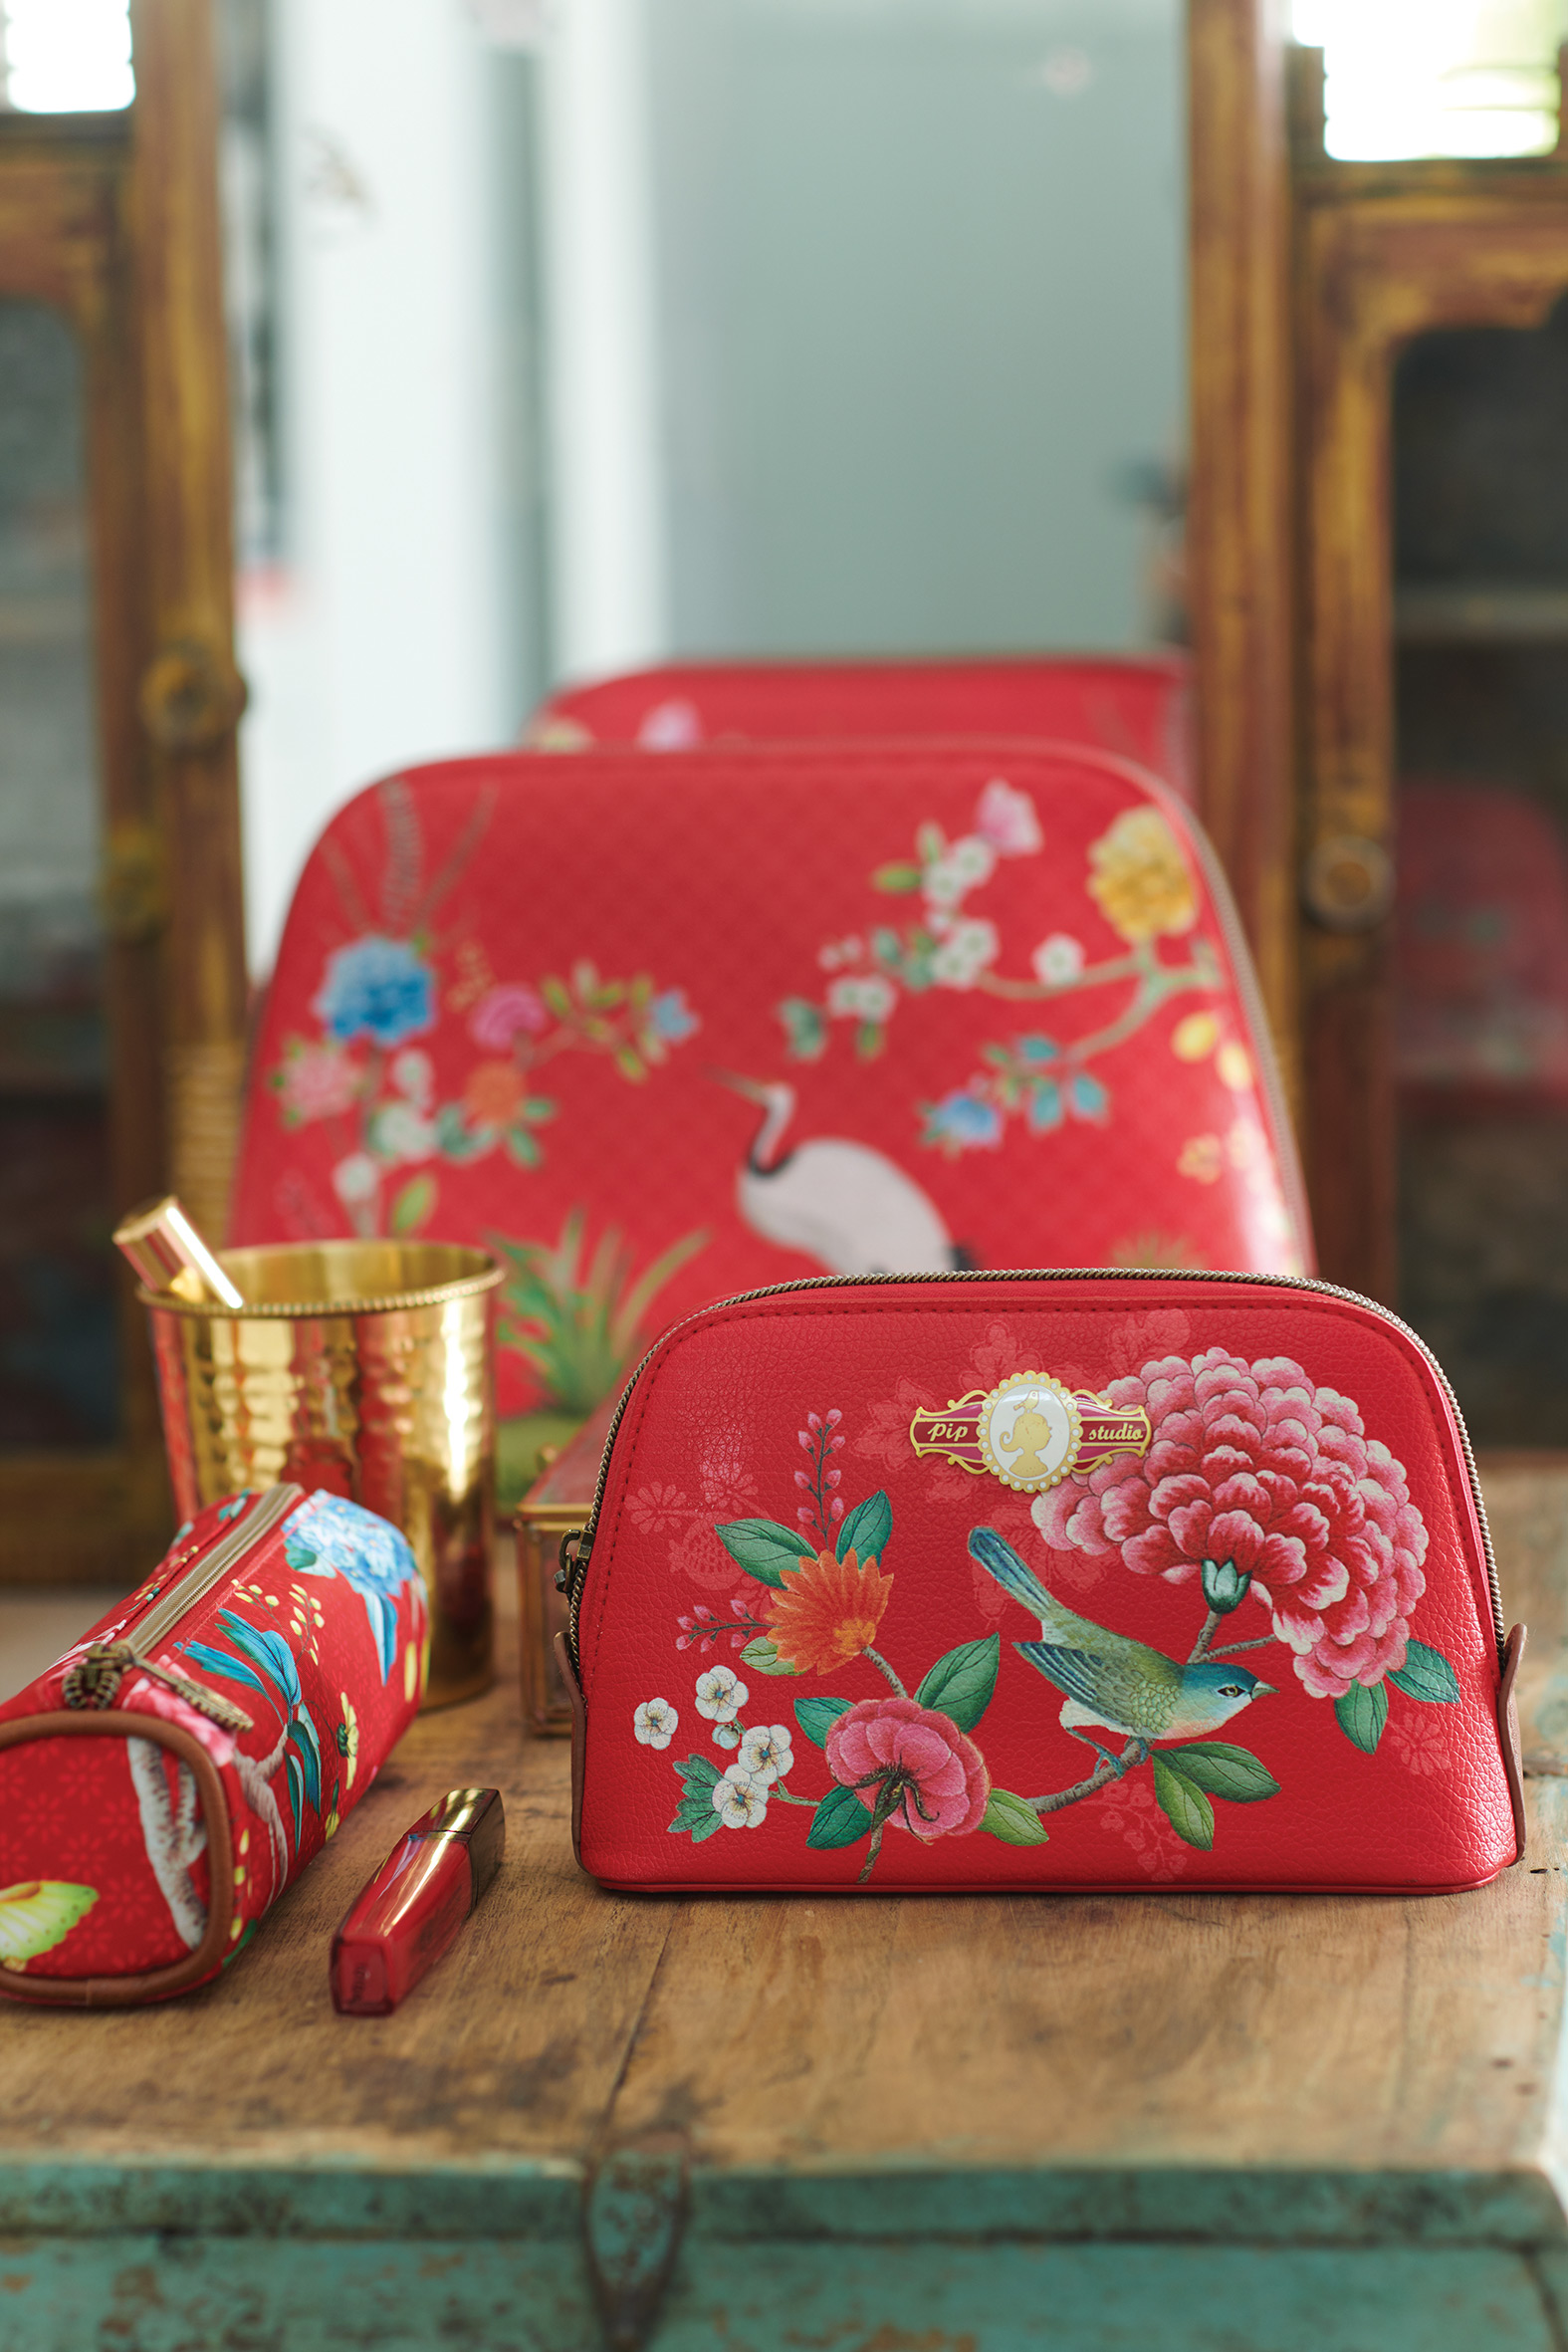 Pip-Studio-Good-Morning-Cosmetic-Bags.jpg